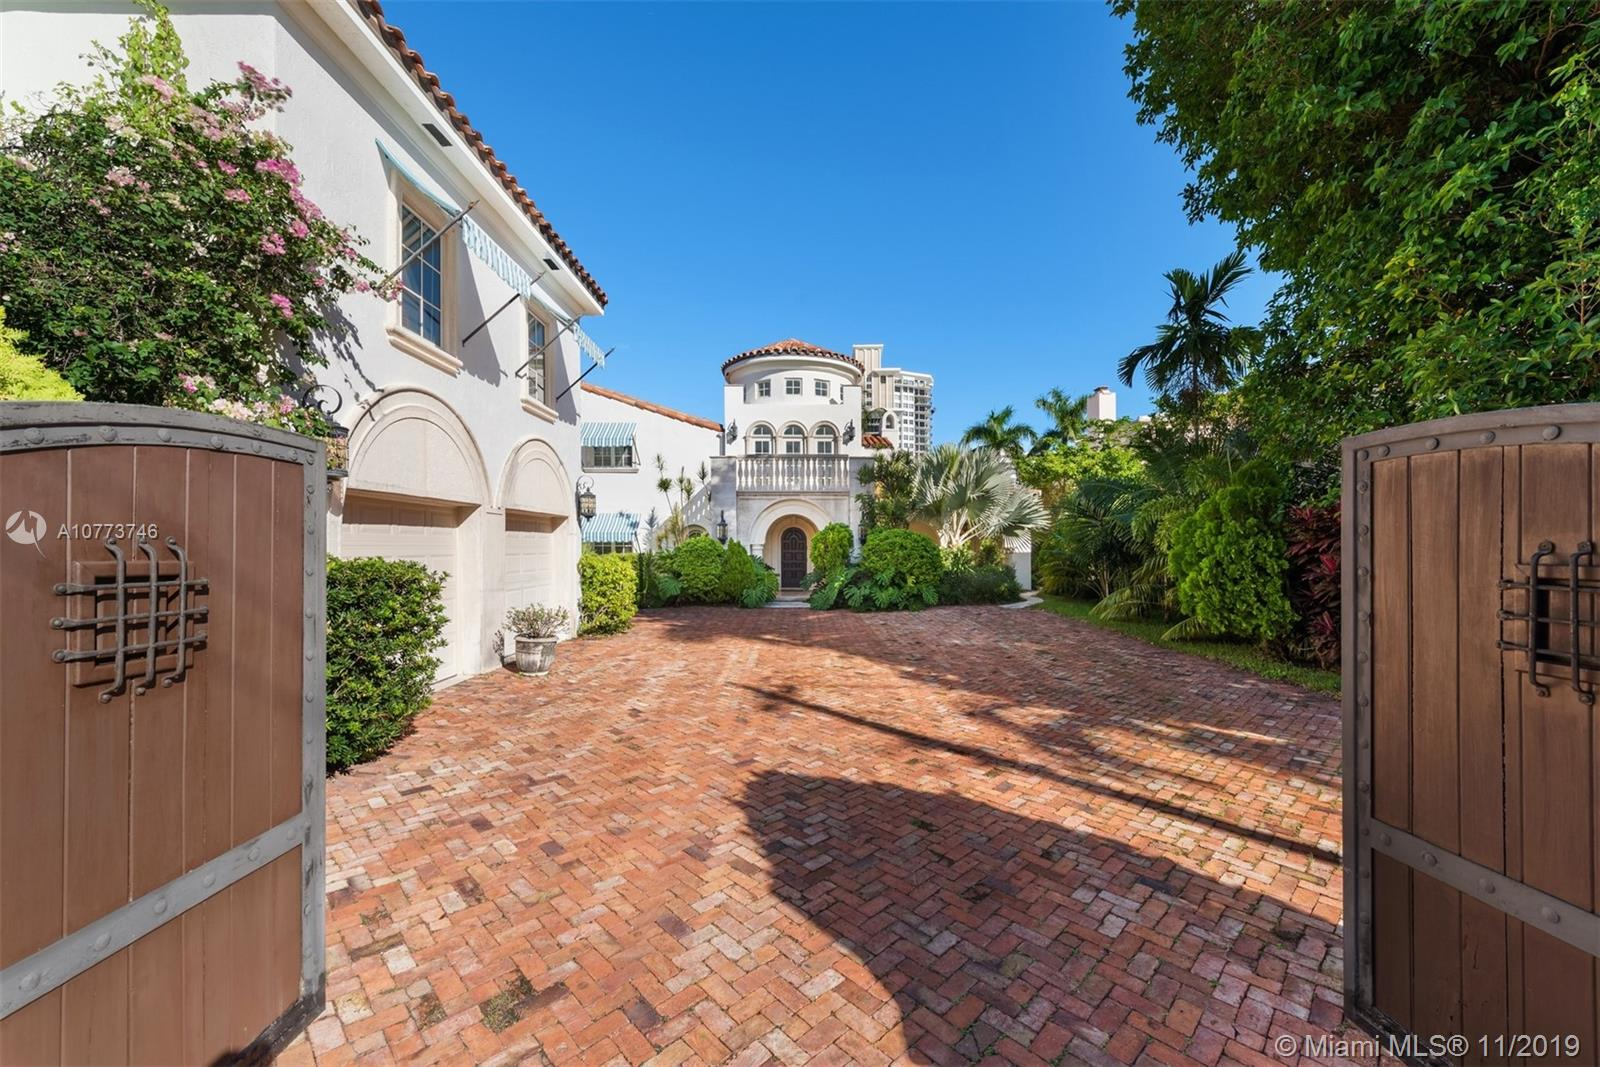 5763  Pine Tree Dr  For Sale A10773746, FL